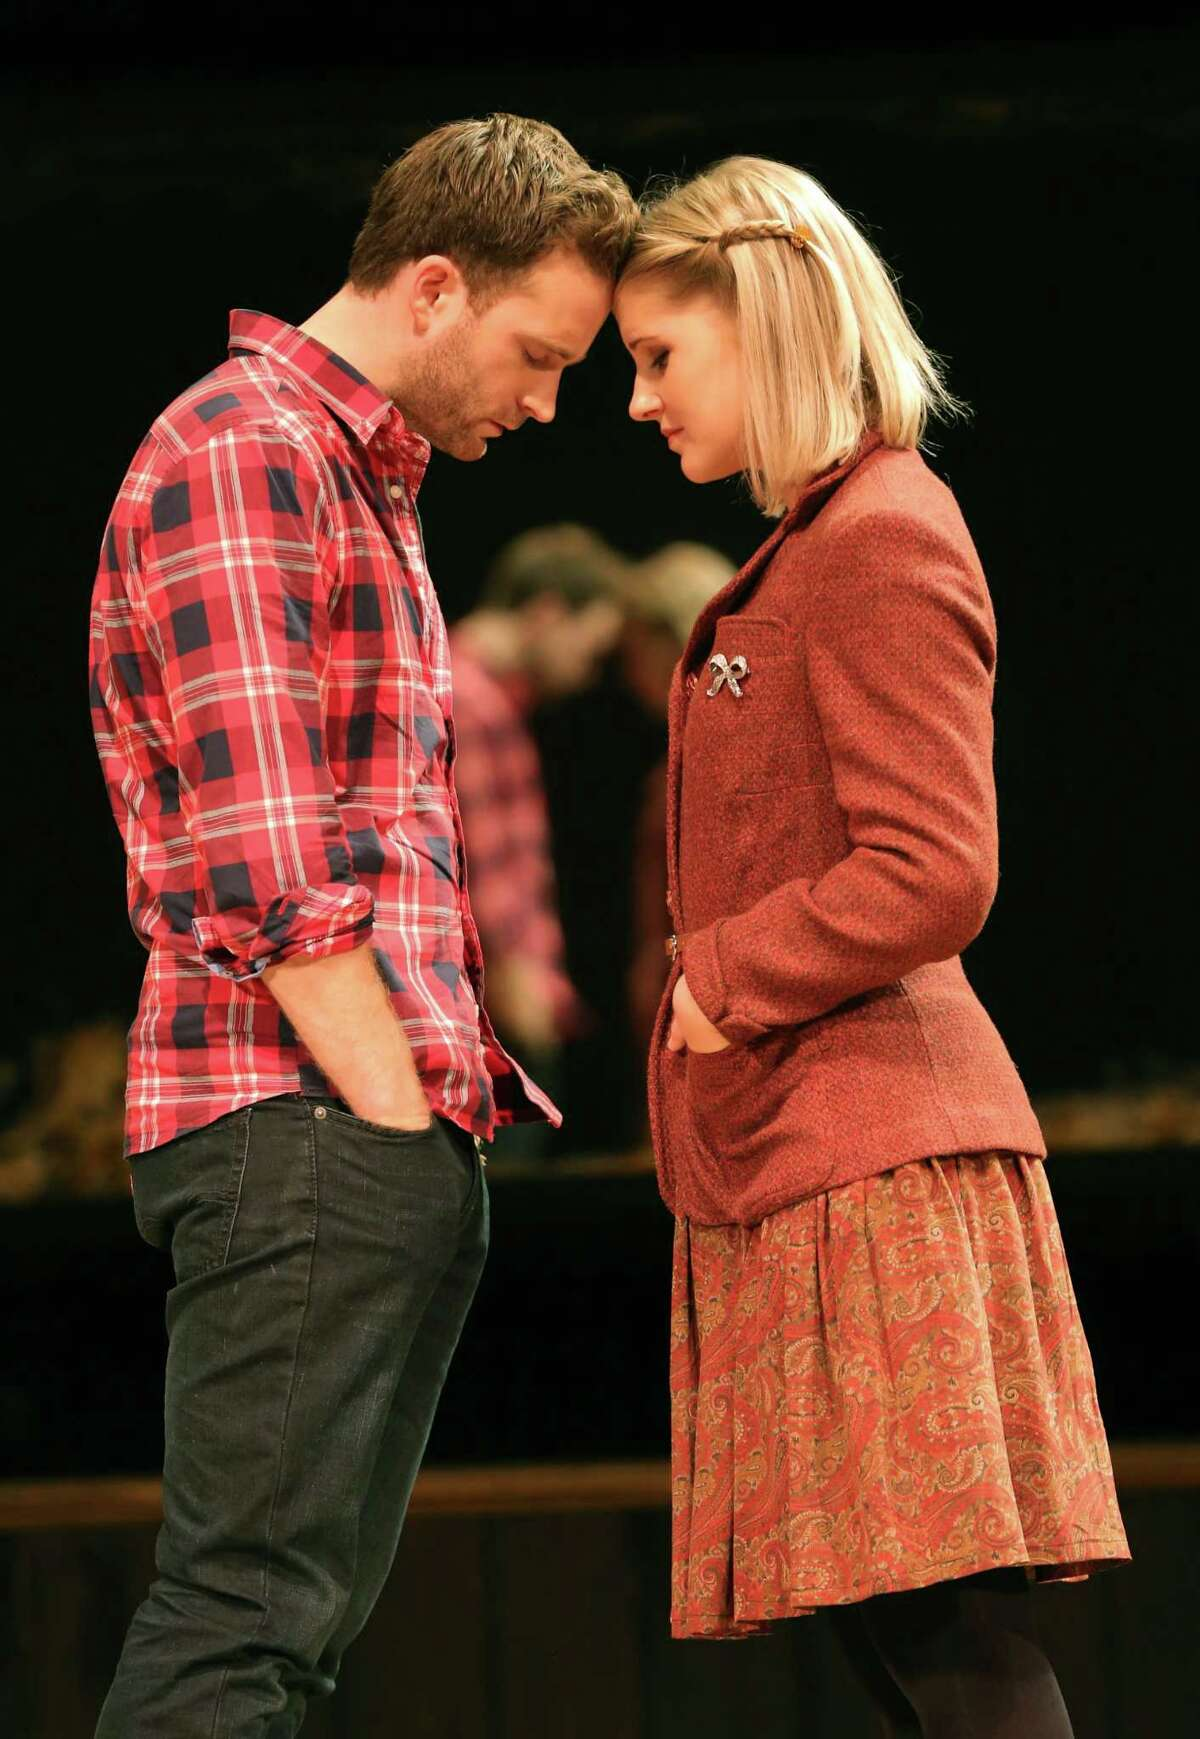 © Joan Marcus Dani de Waal is the Girl who inspires the Guy, played by Stuart Ward.